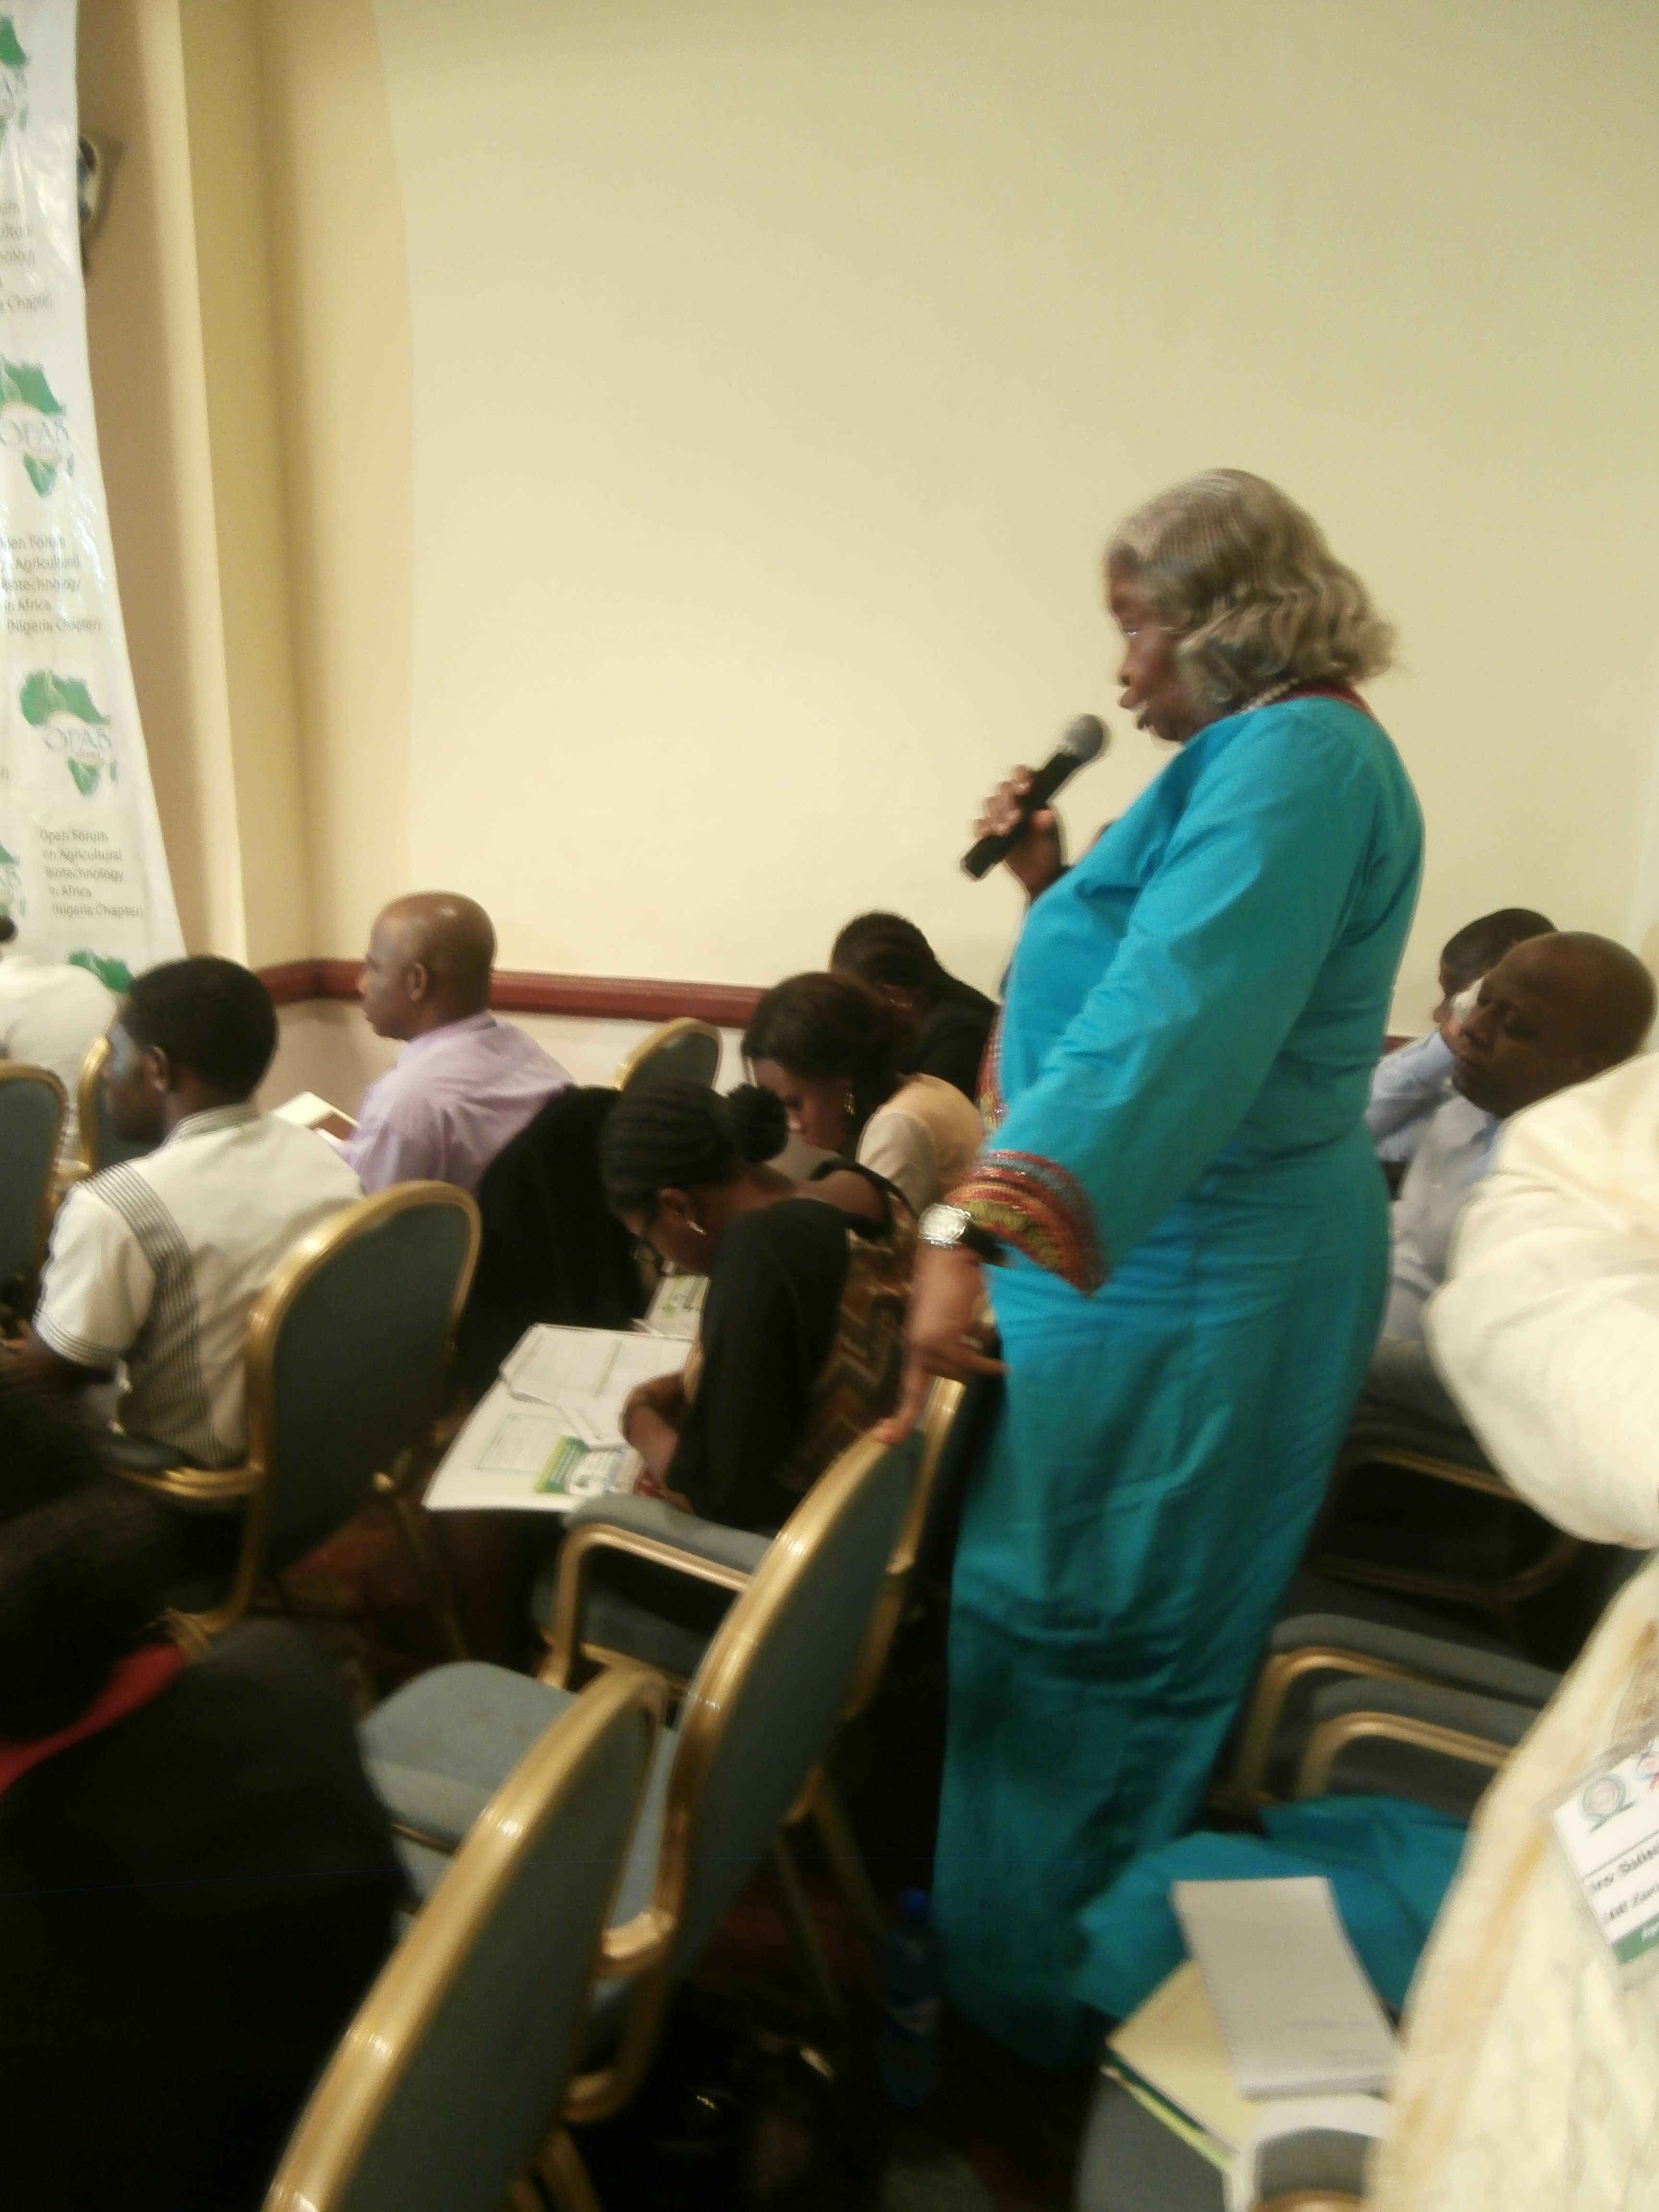 Agbaebgu, participating during the question and answer section